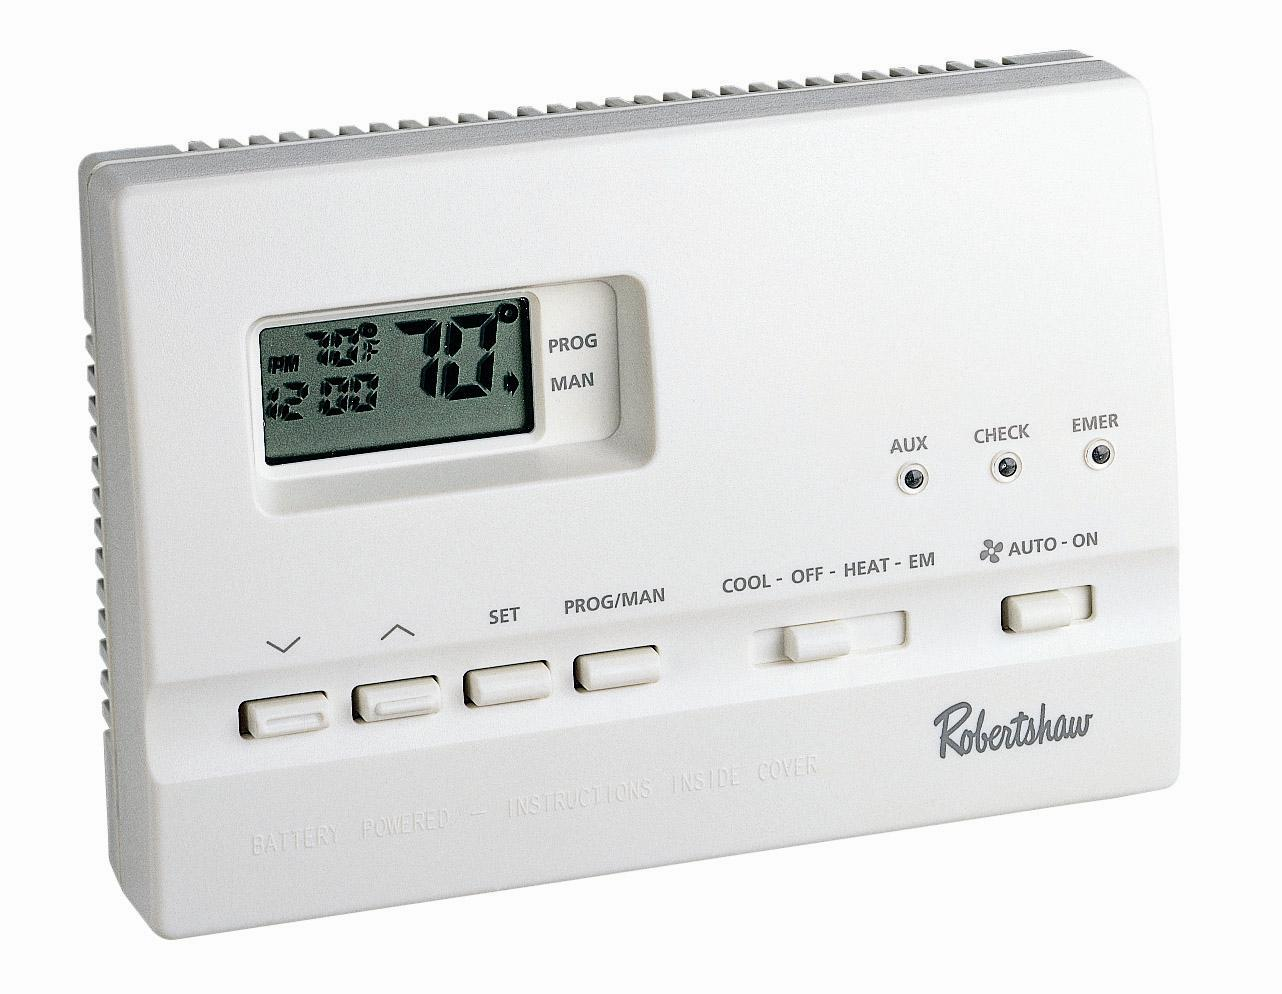 Digital Thermostat 9620, 2 Heat / 2 Cool, 7 Day Programmable